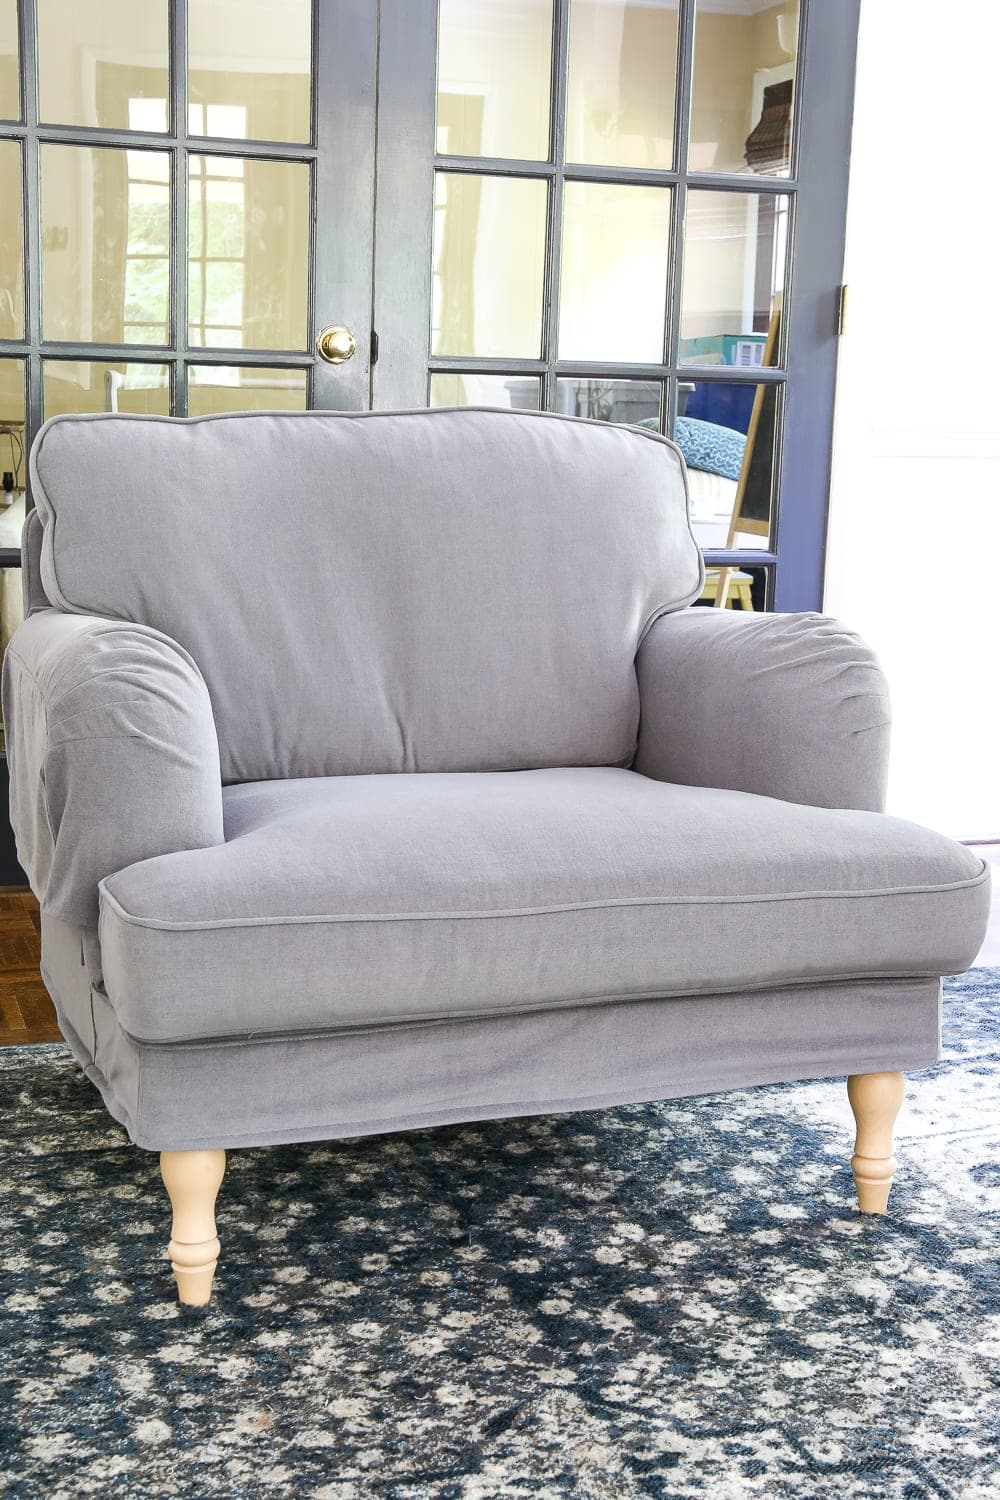 Ikea S New Sofa And Chairs And How To Keep Them Clean